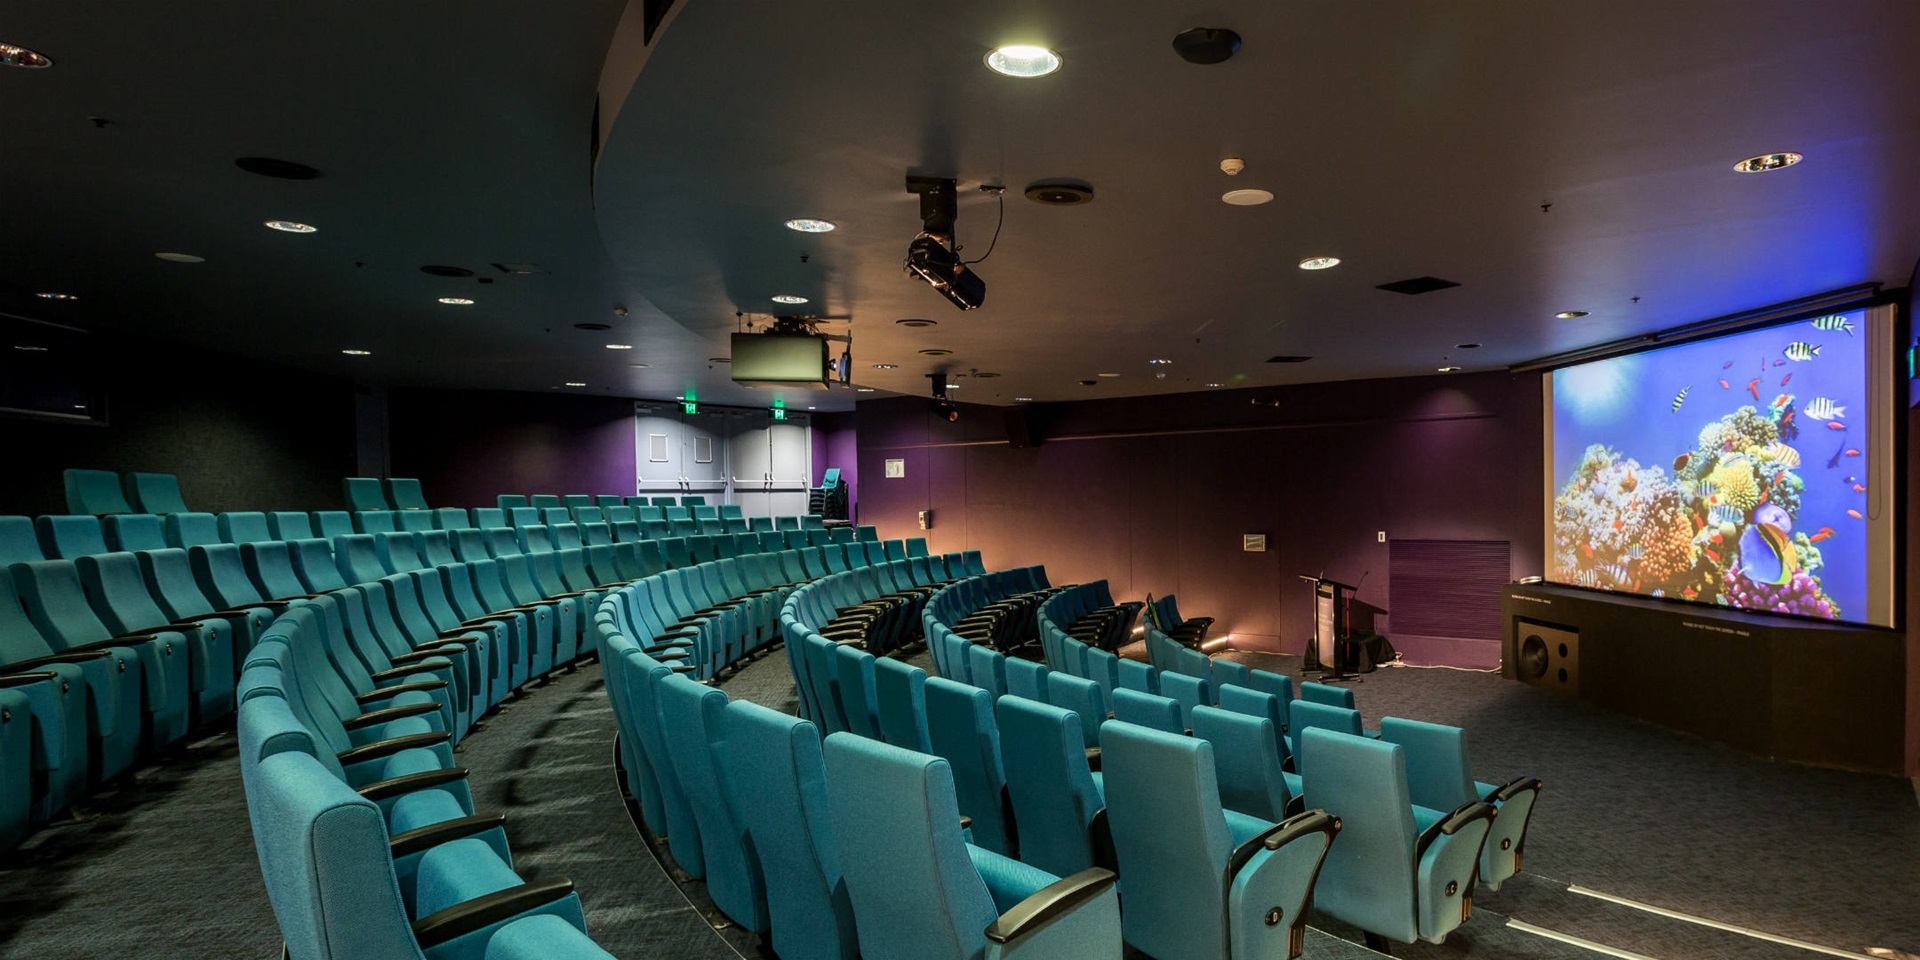 The Theatre boasts state-of-the-art presentation equipment and facilities and can comfortably seat 210 guests.